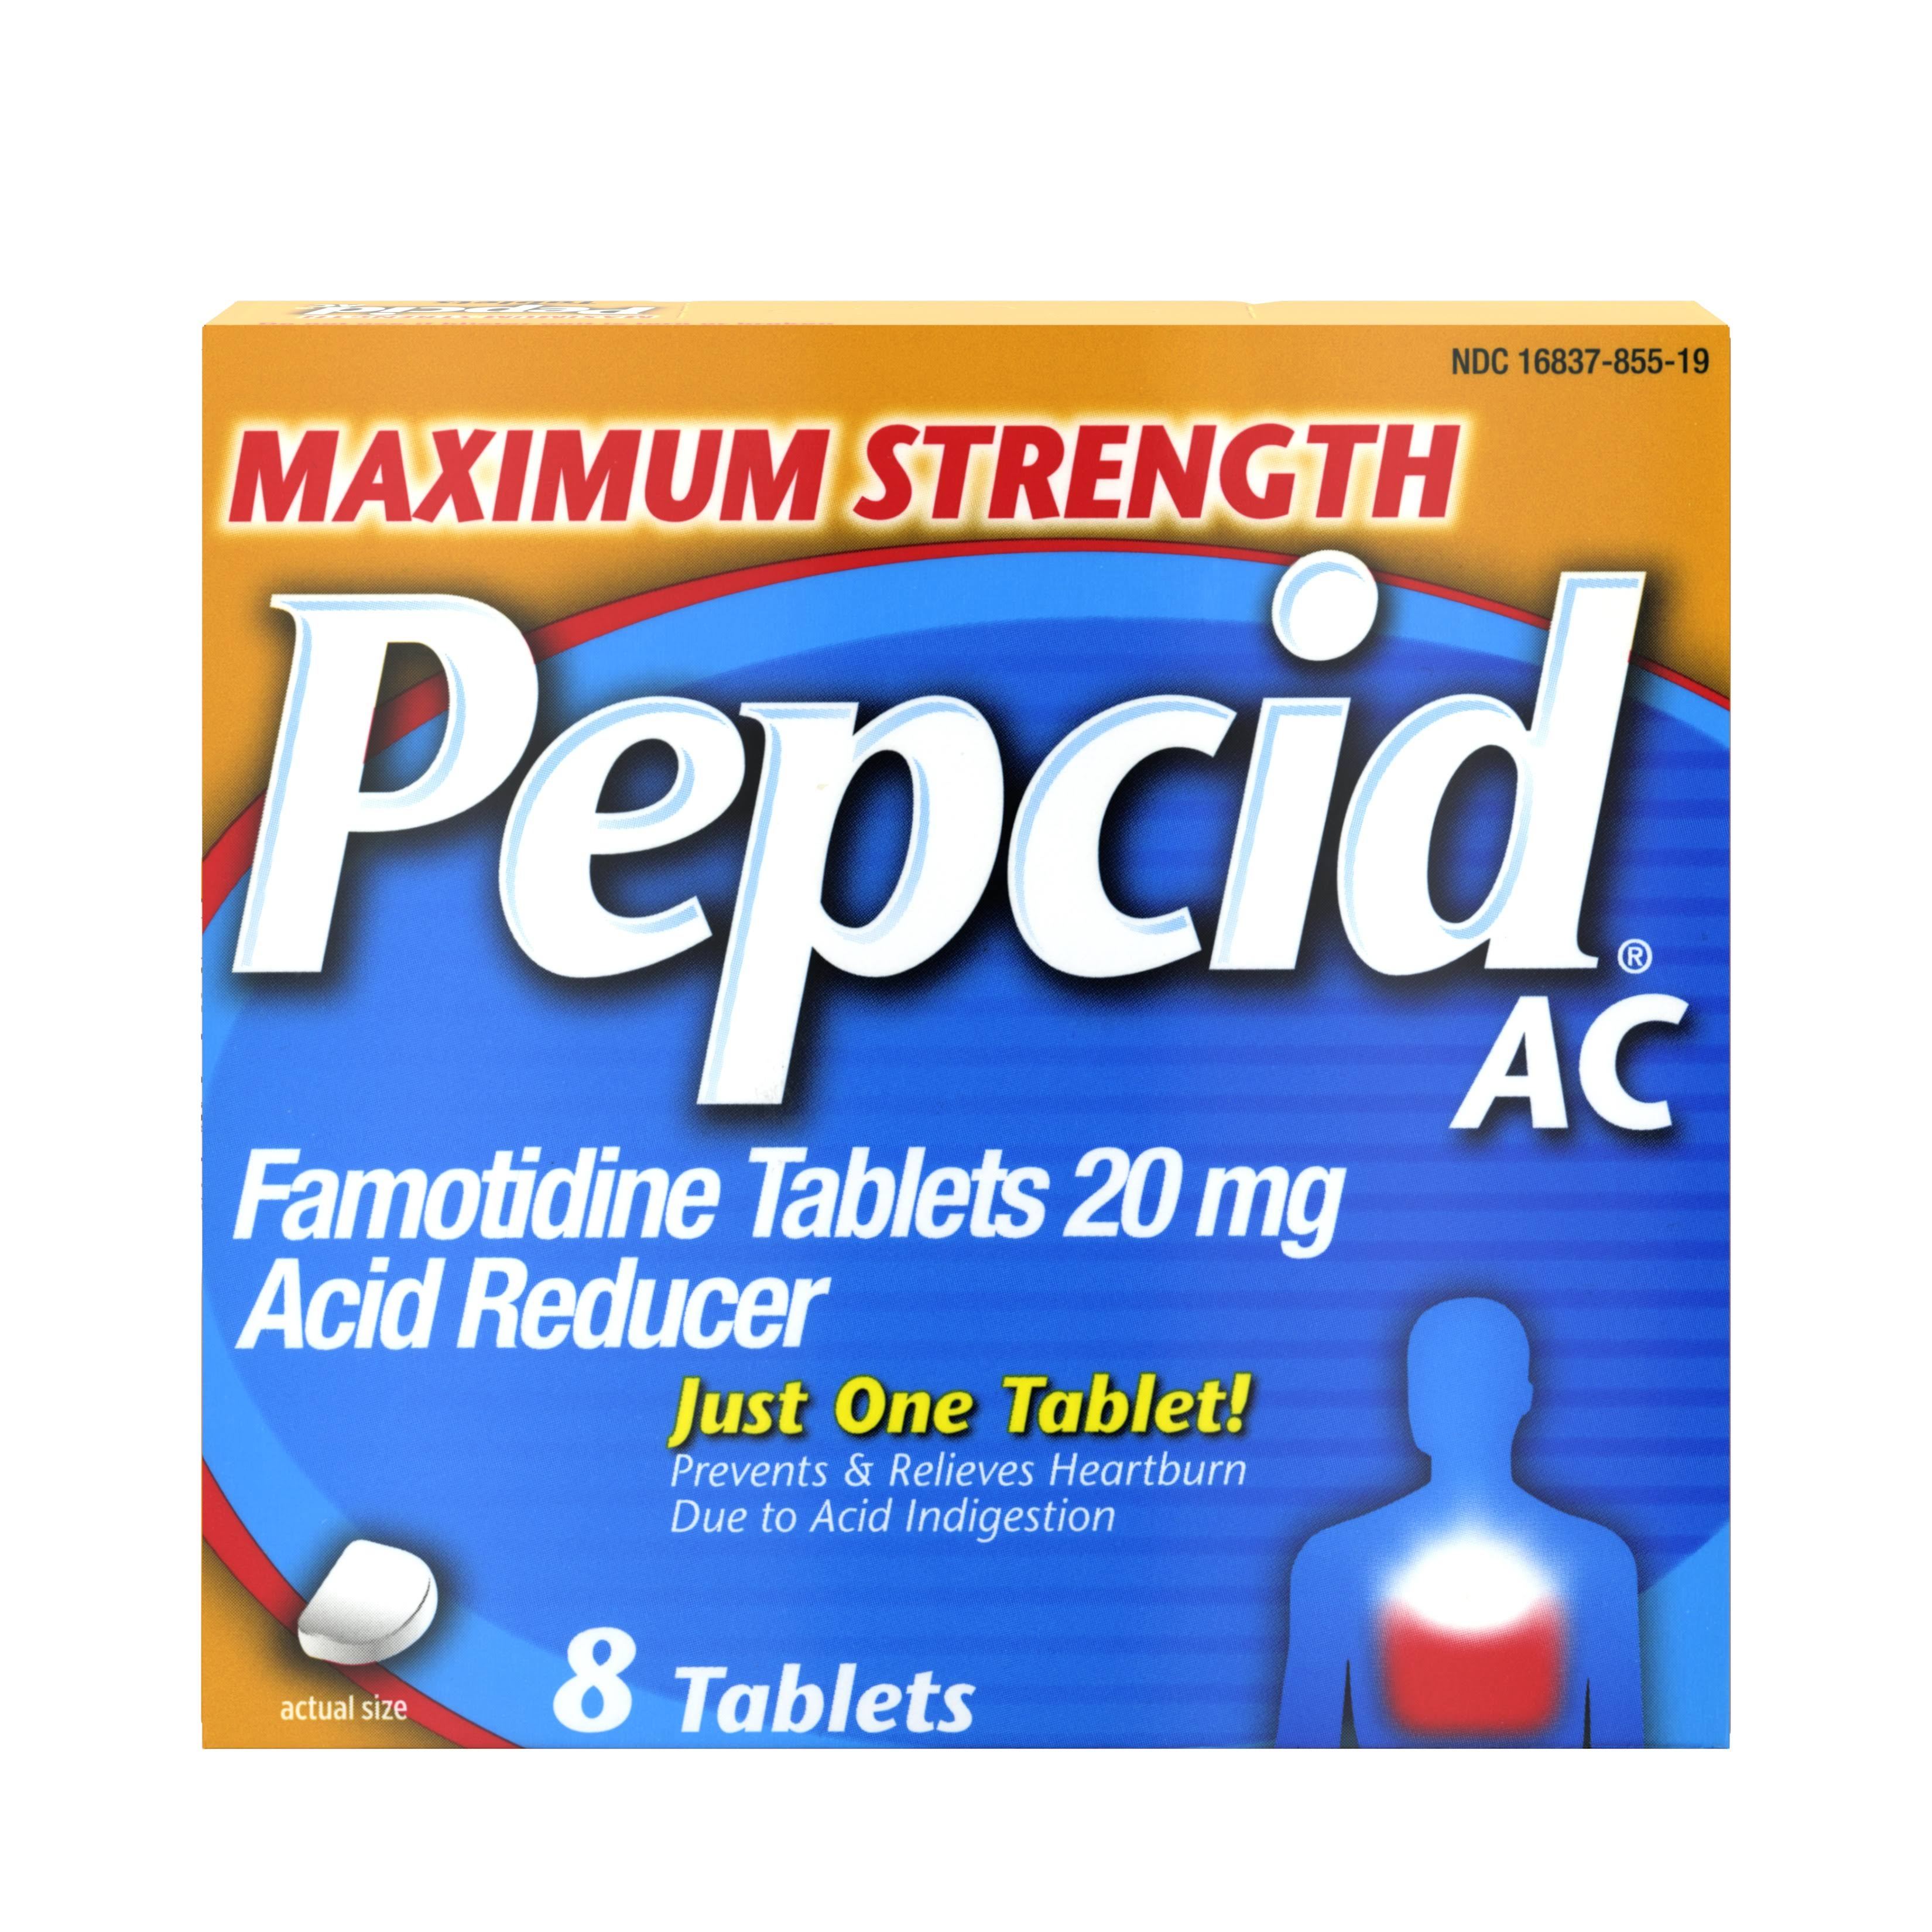 Pepcid AC Maximum Strength Famotidine - 20 mg, x8